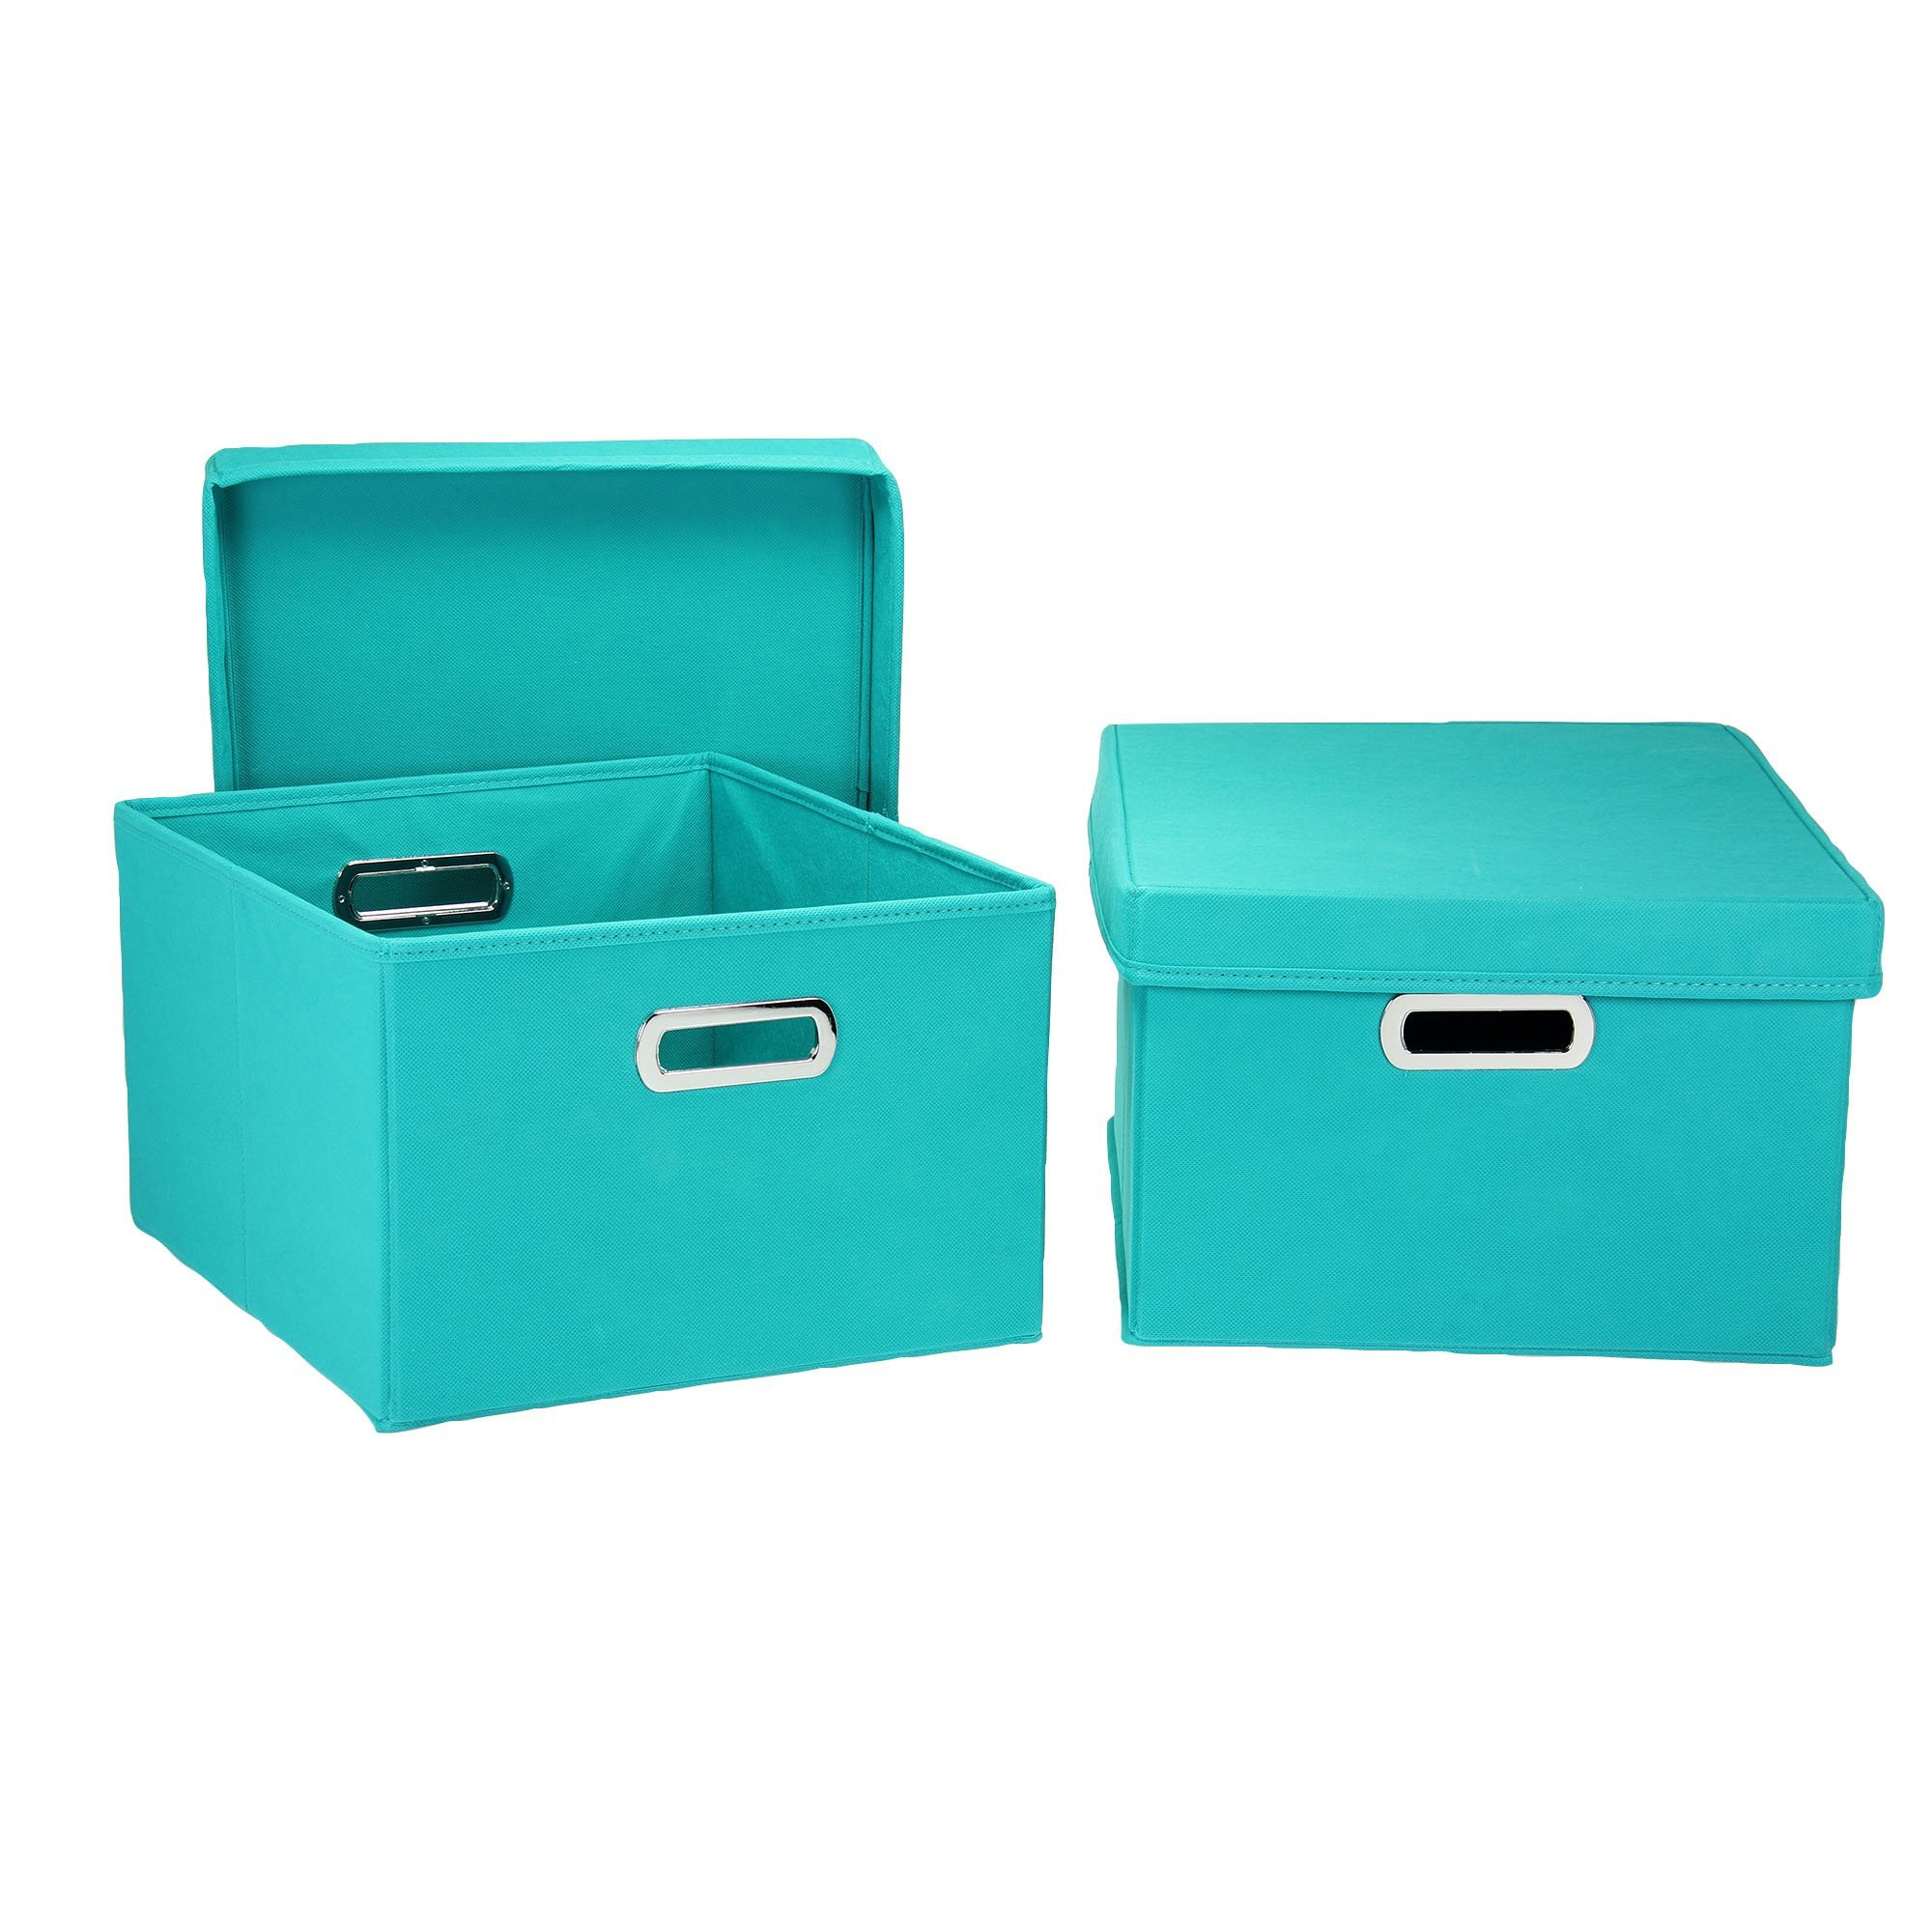 Household Essentials Fabric Storage Boxes with Lids and Handles, Aqua